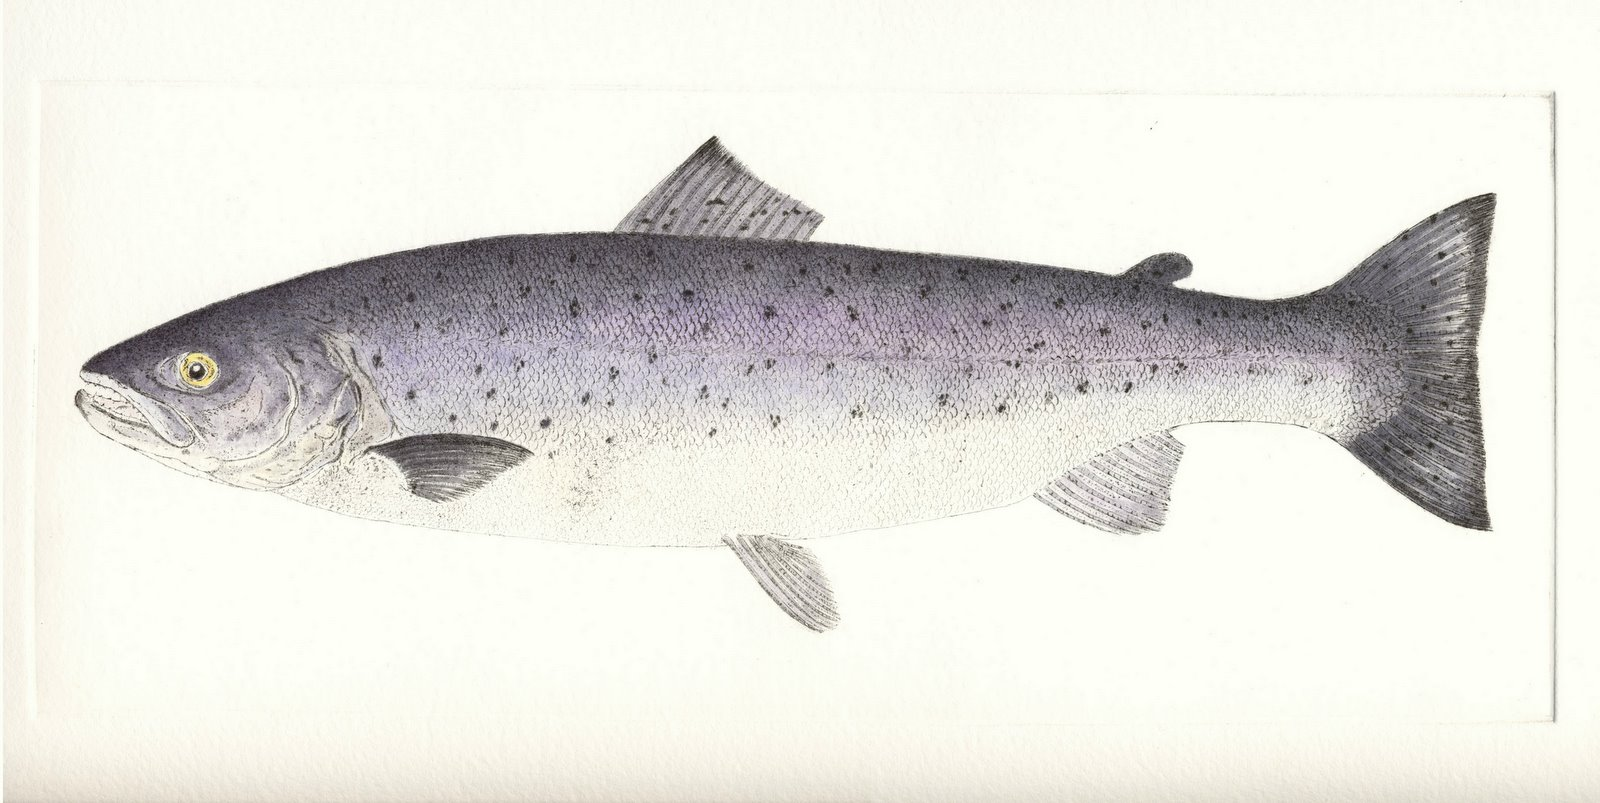 http://www.debbymason.com/catalogues/MyWork/graphics/products/high/SeaTrout_IOM.jpg